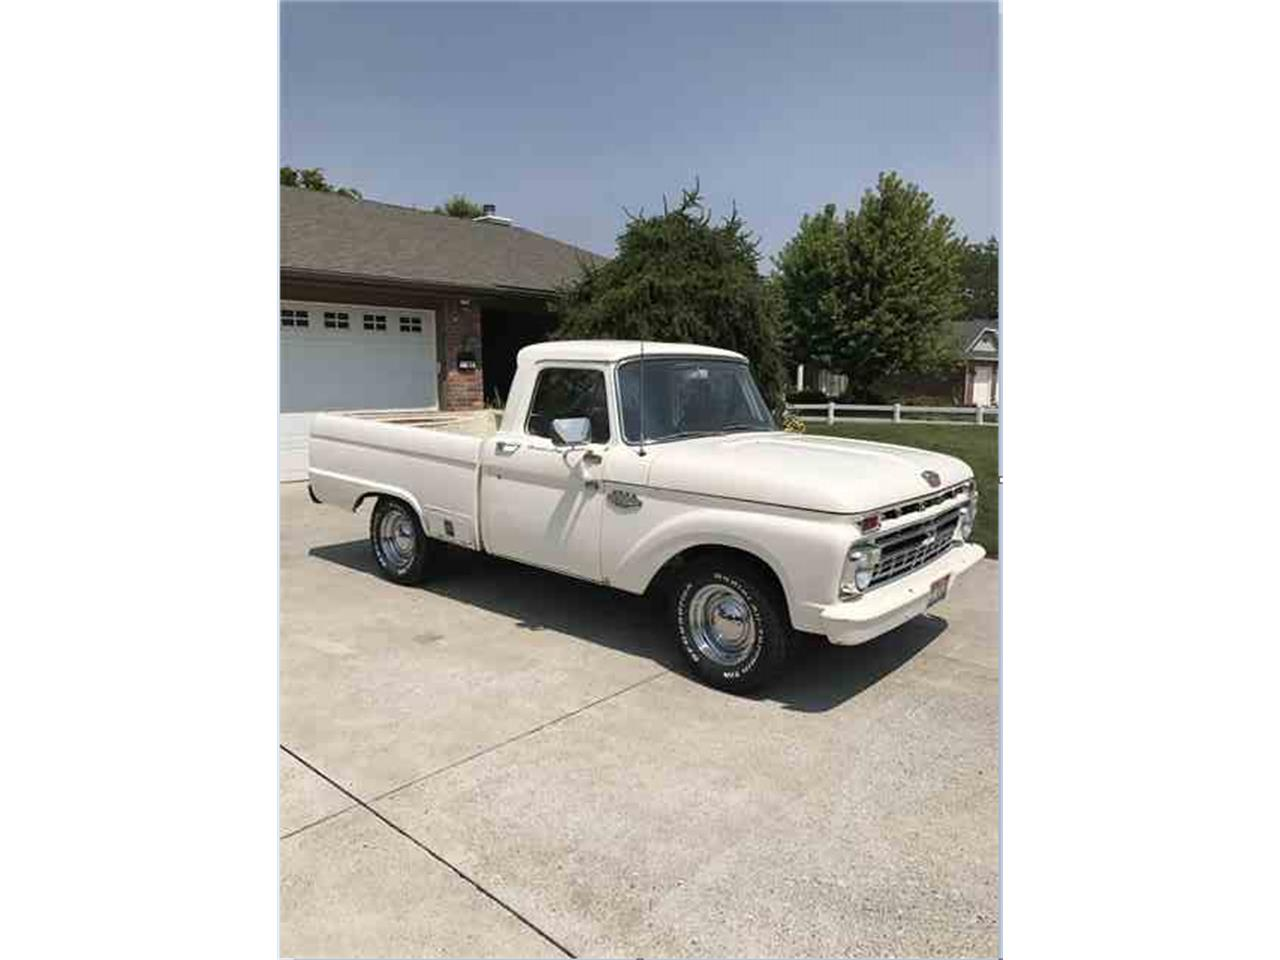 Large Picture of Classic '66 Ford F100 located in Twin Falls Idaho - $9,300.00 Offered by a Private Seller - LUWX